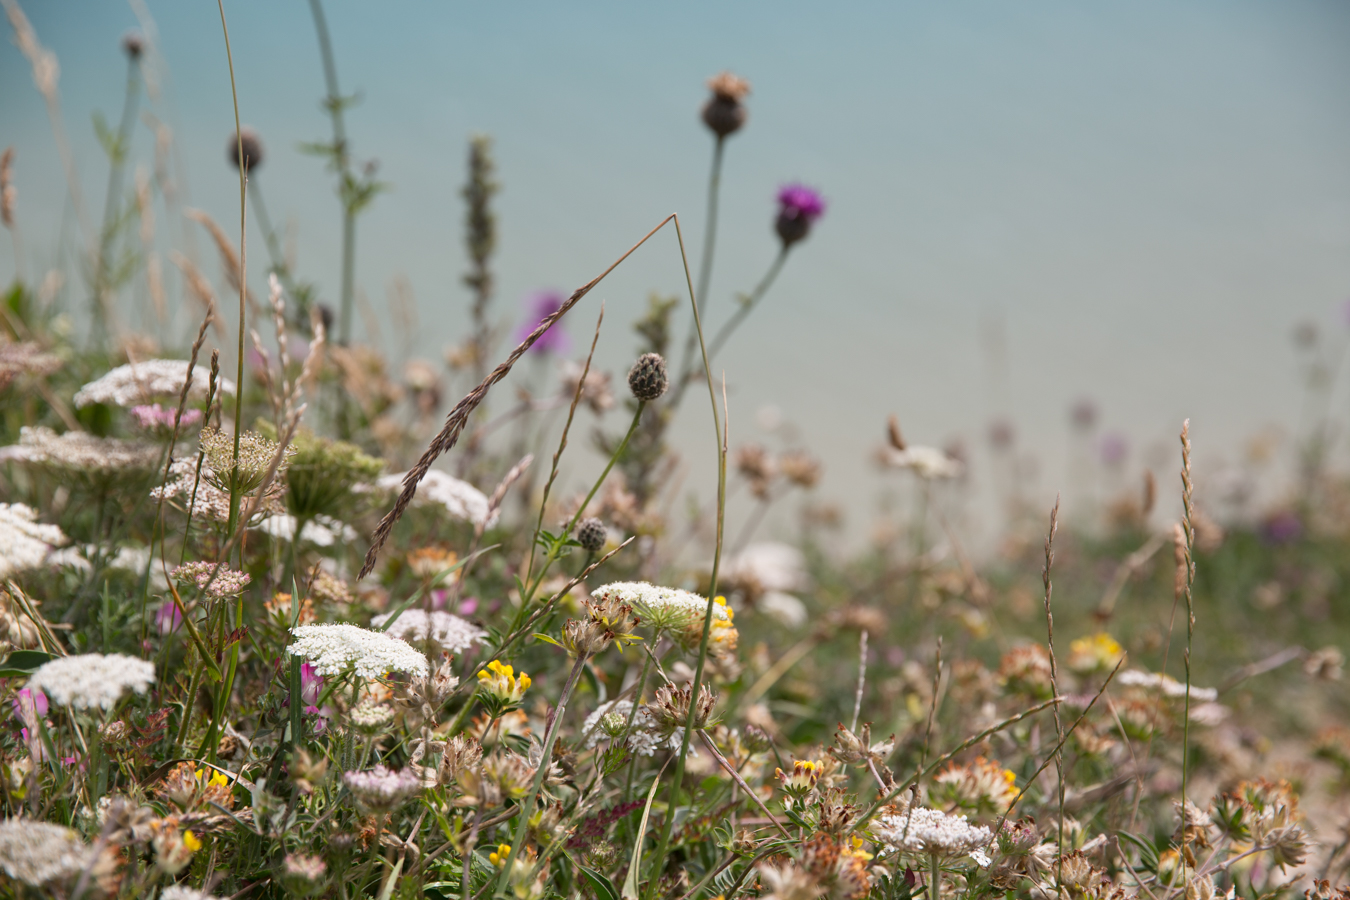 Wildflowers on the cliff edge of Beachy Head